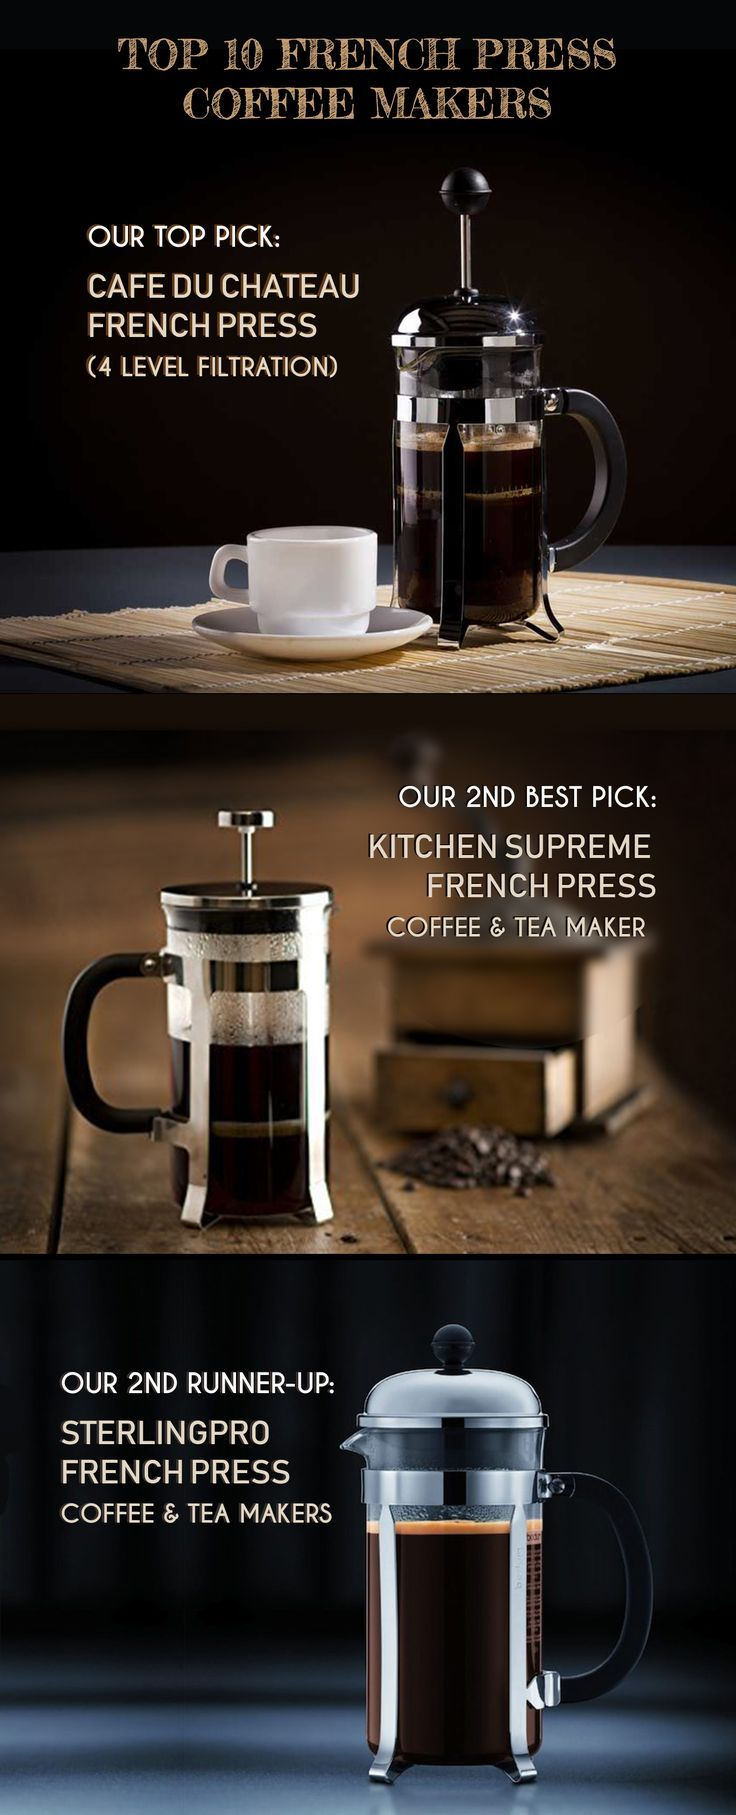 Top 10 French Press Coffee Makers June 2020 Reviews Buyers Guide French Press Coffee Best French Press Coffee French Press Coffee Maker